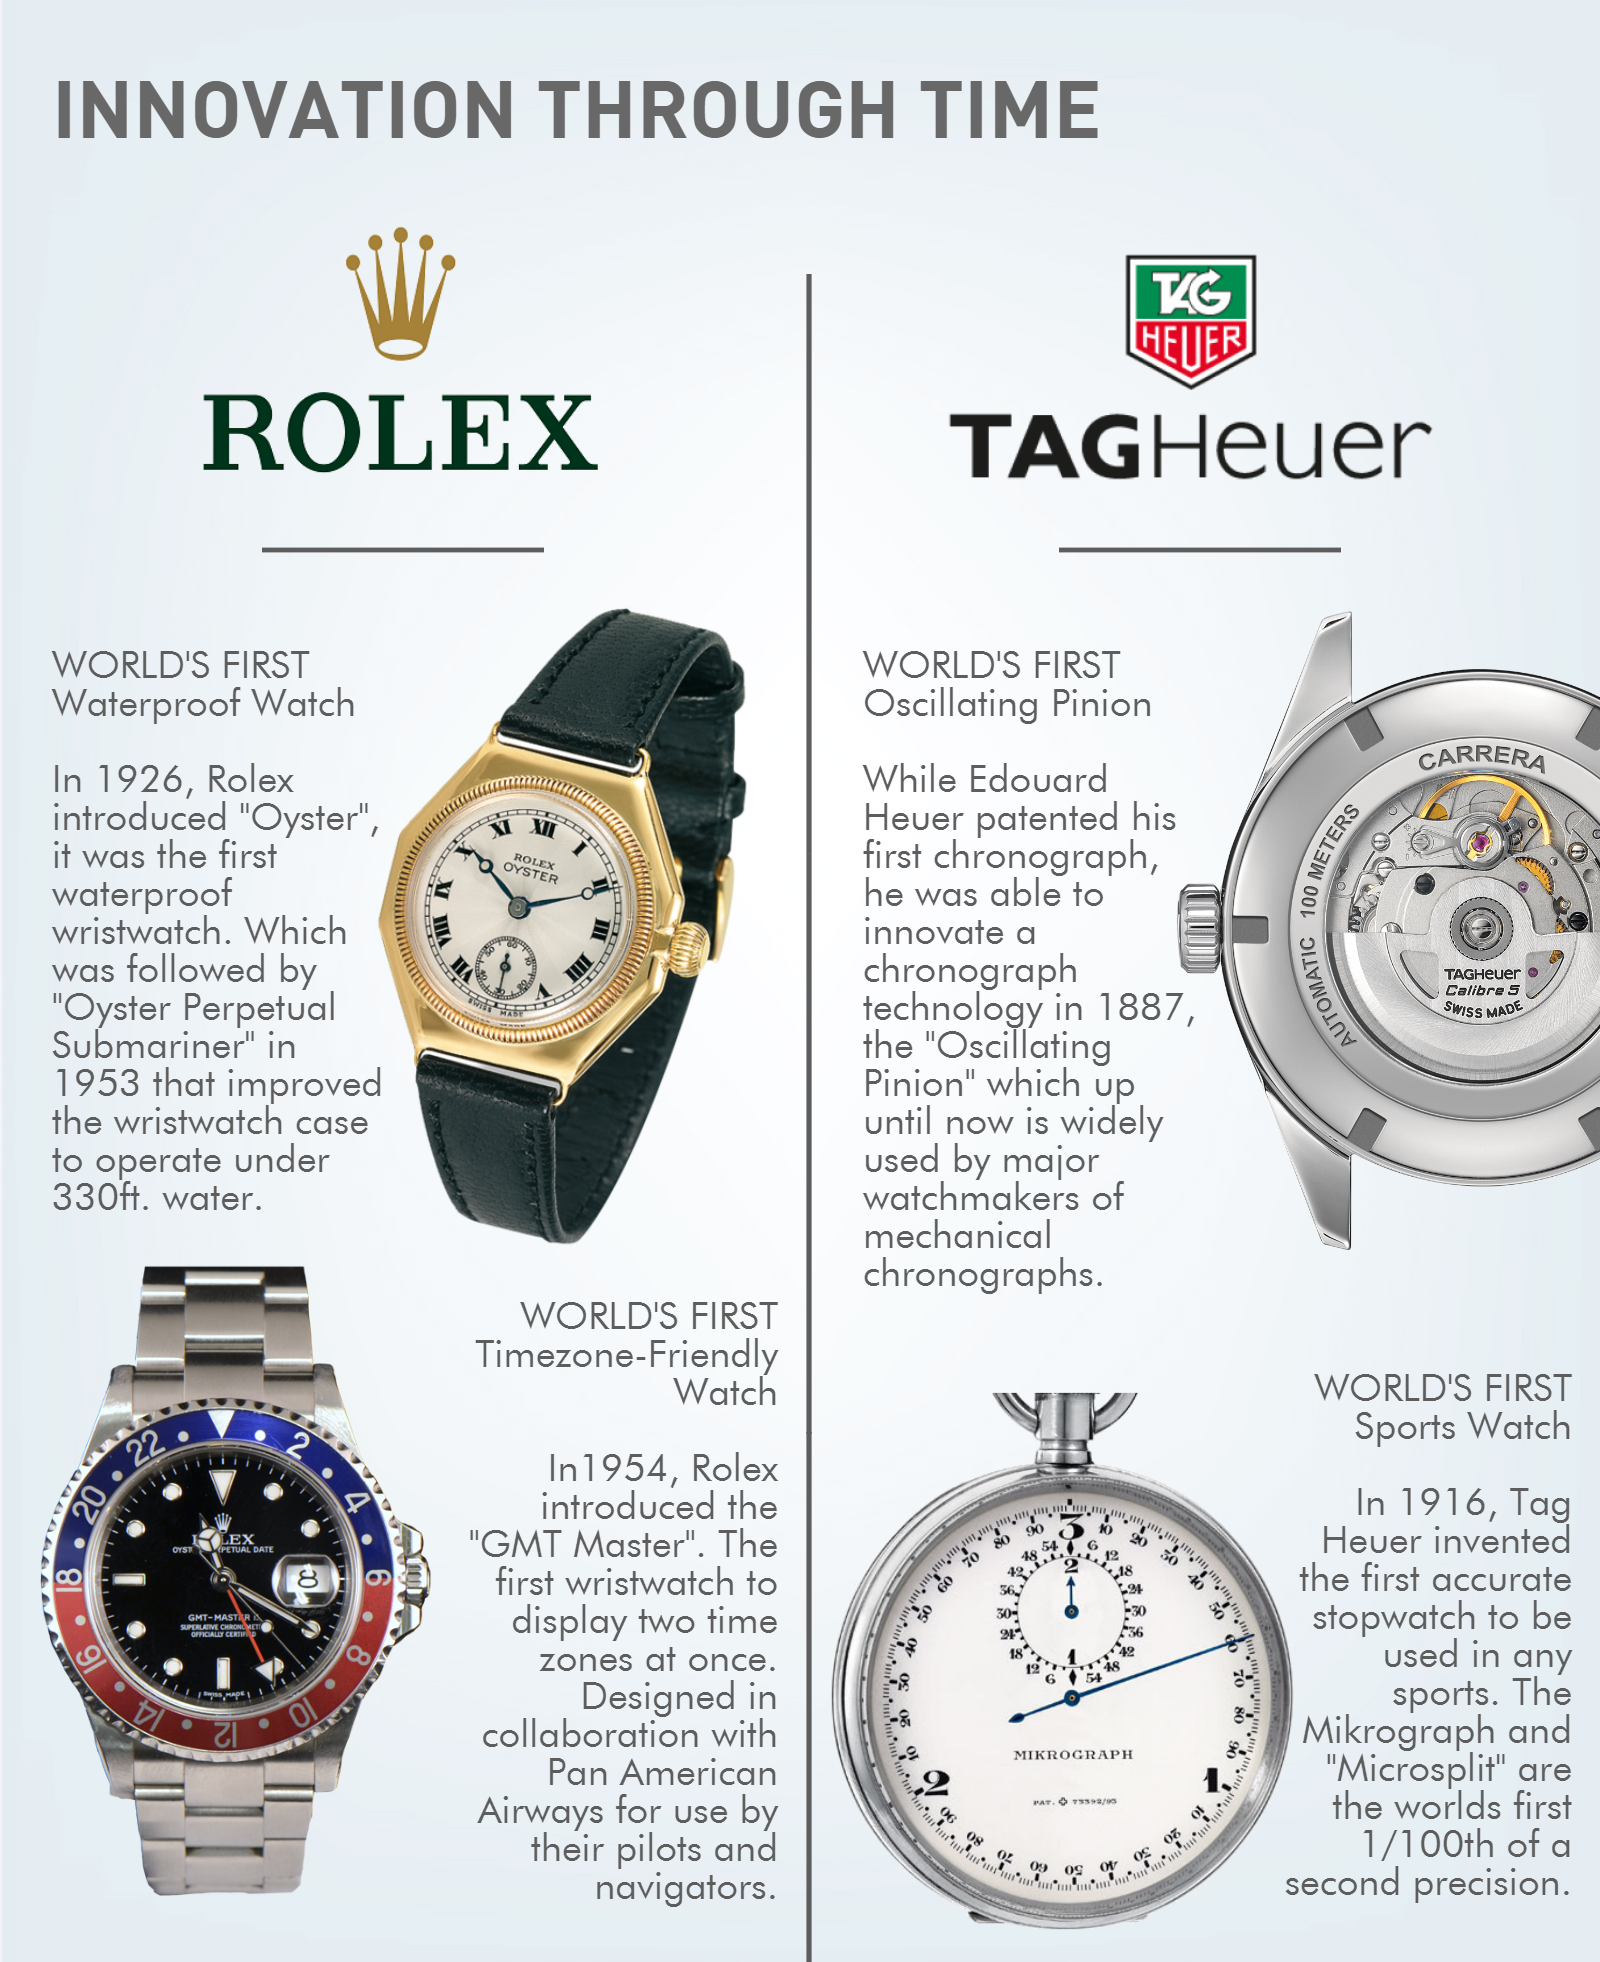 Rolex and Tag